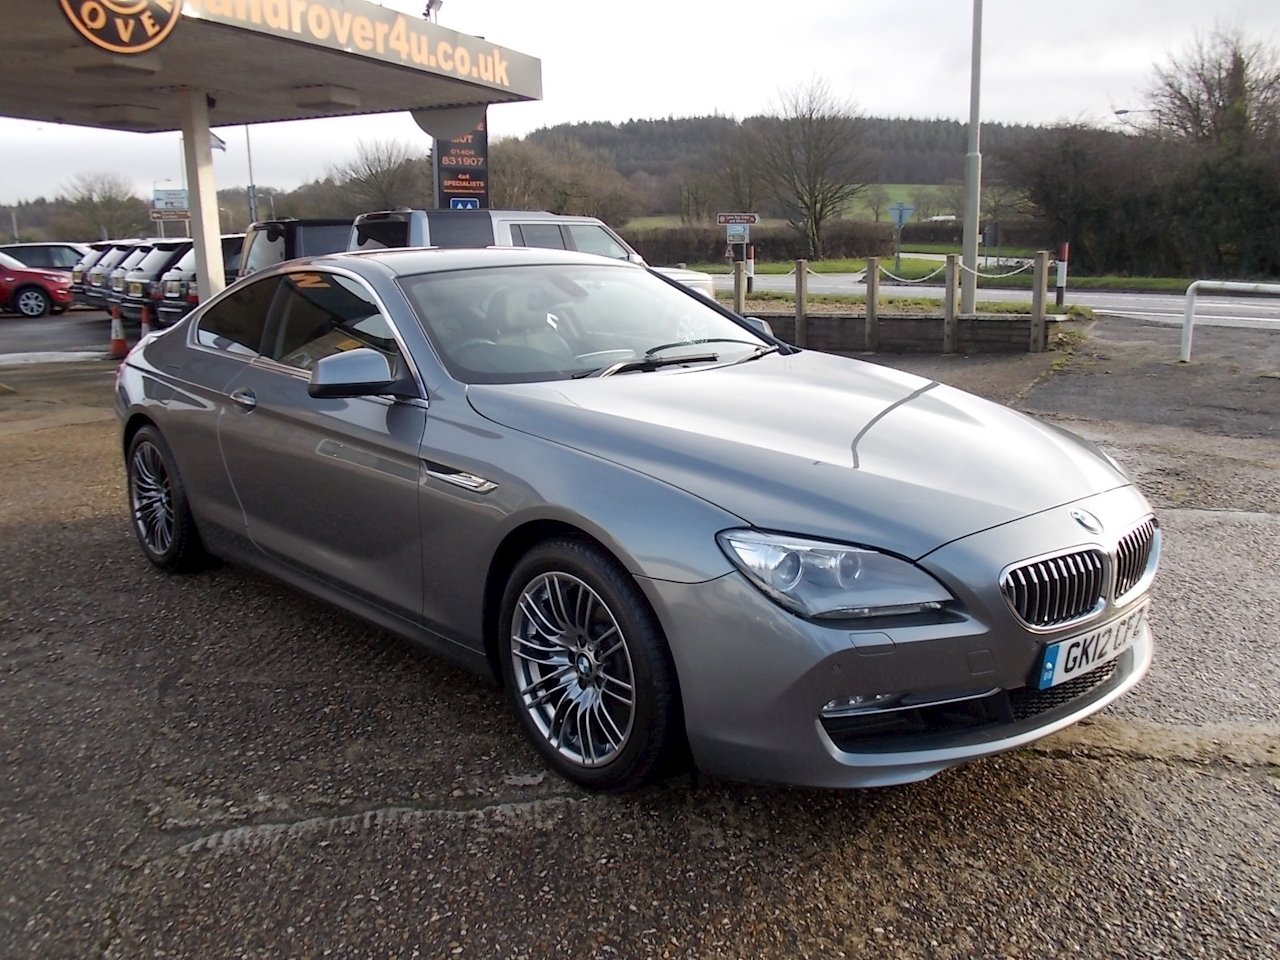 BMW 6 Series 640D Se Coupe 3.0 Automatic Diesel